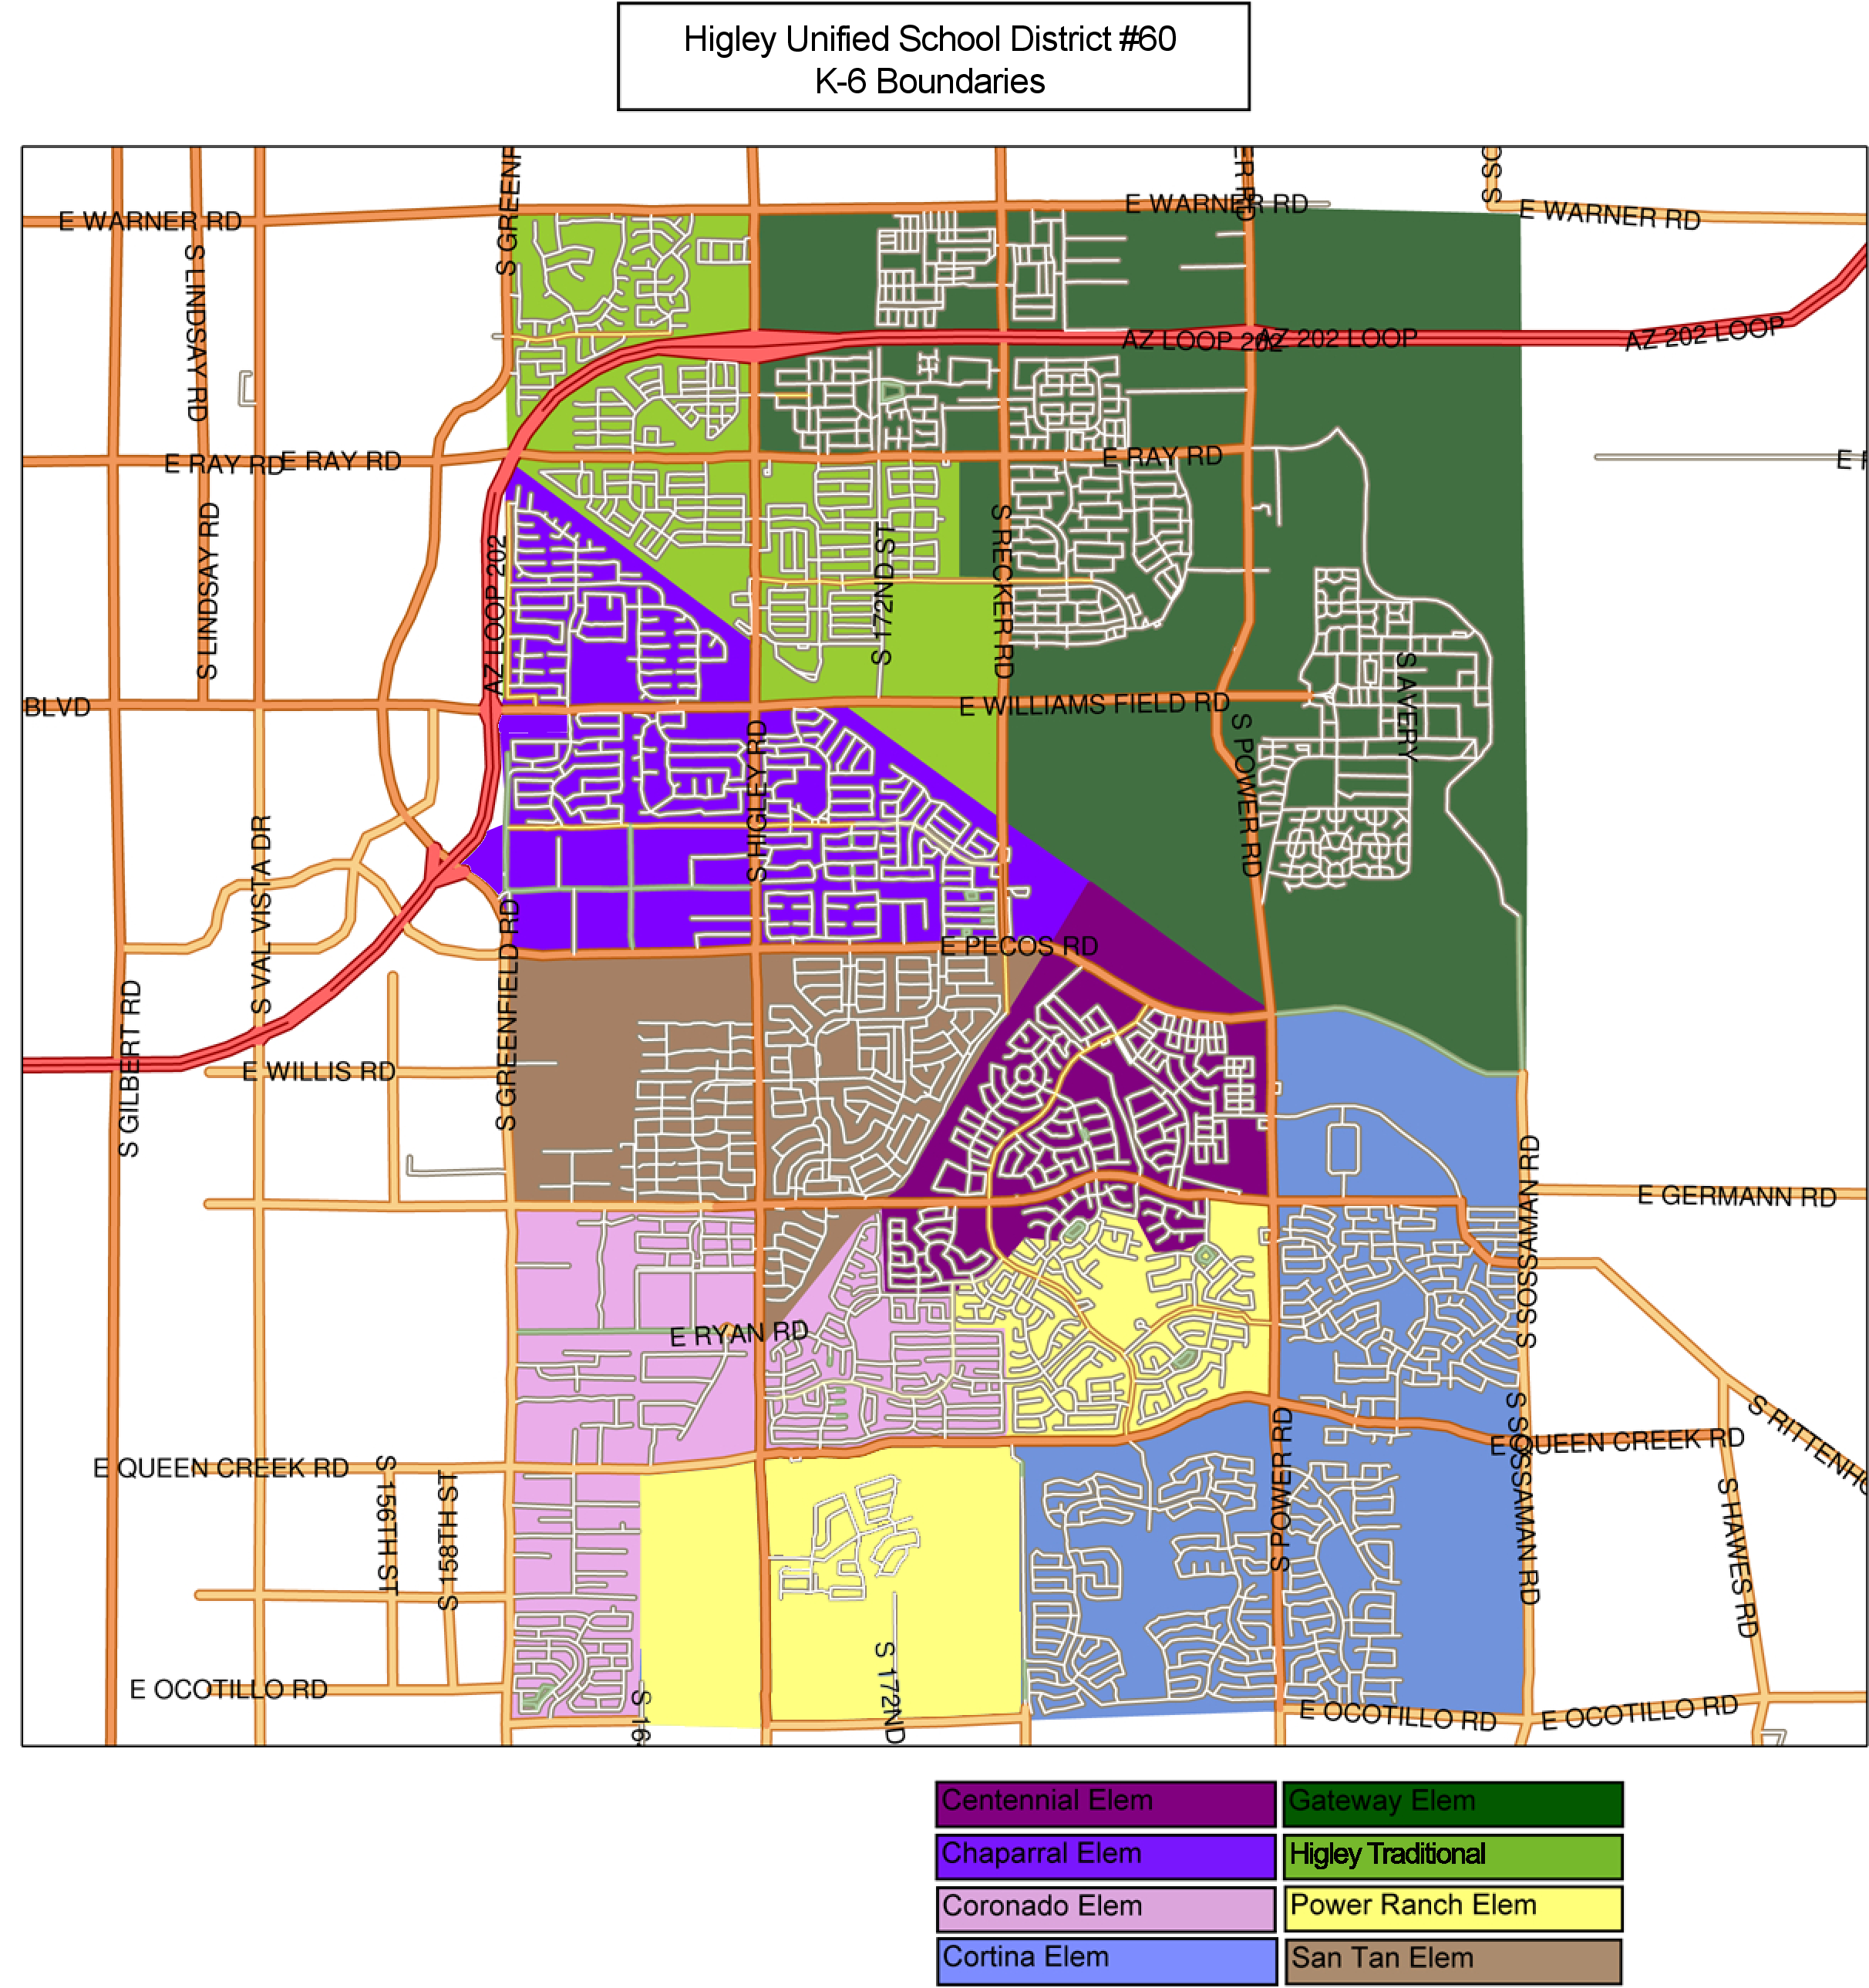 Higley Elementary School Boundary Map 2014-15